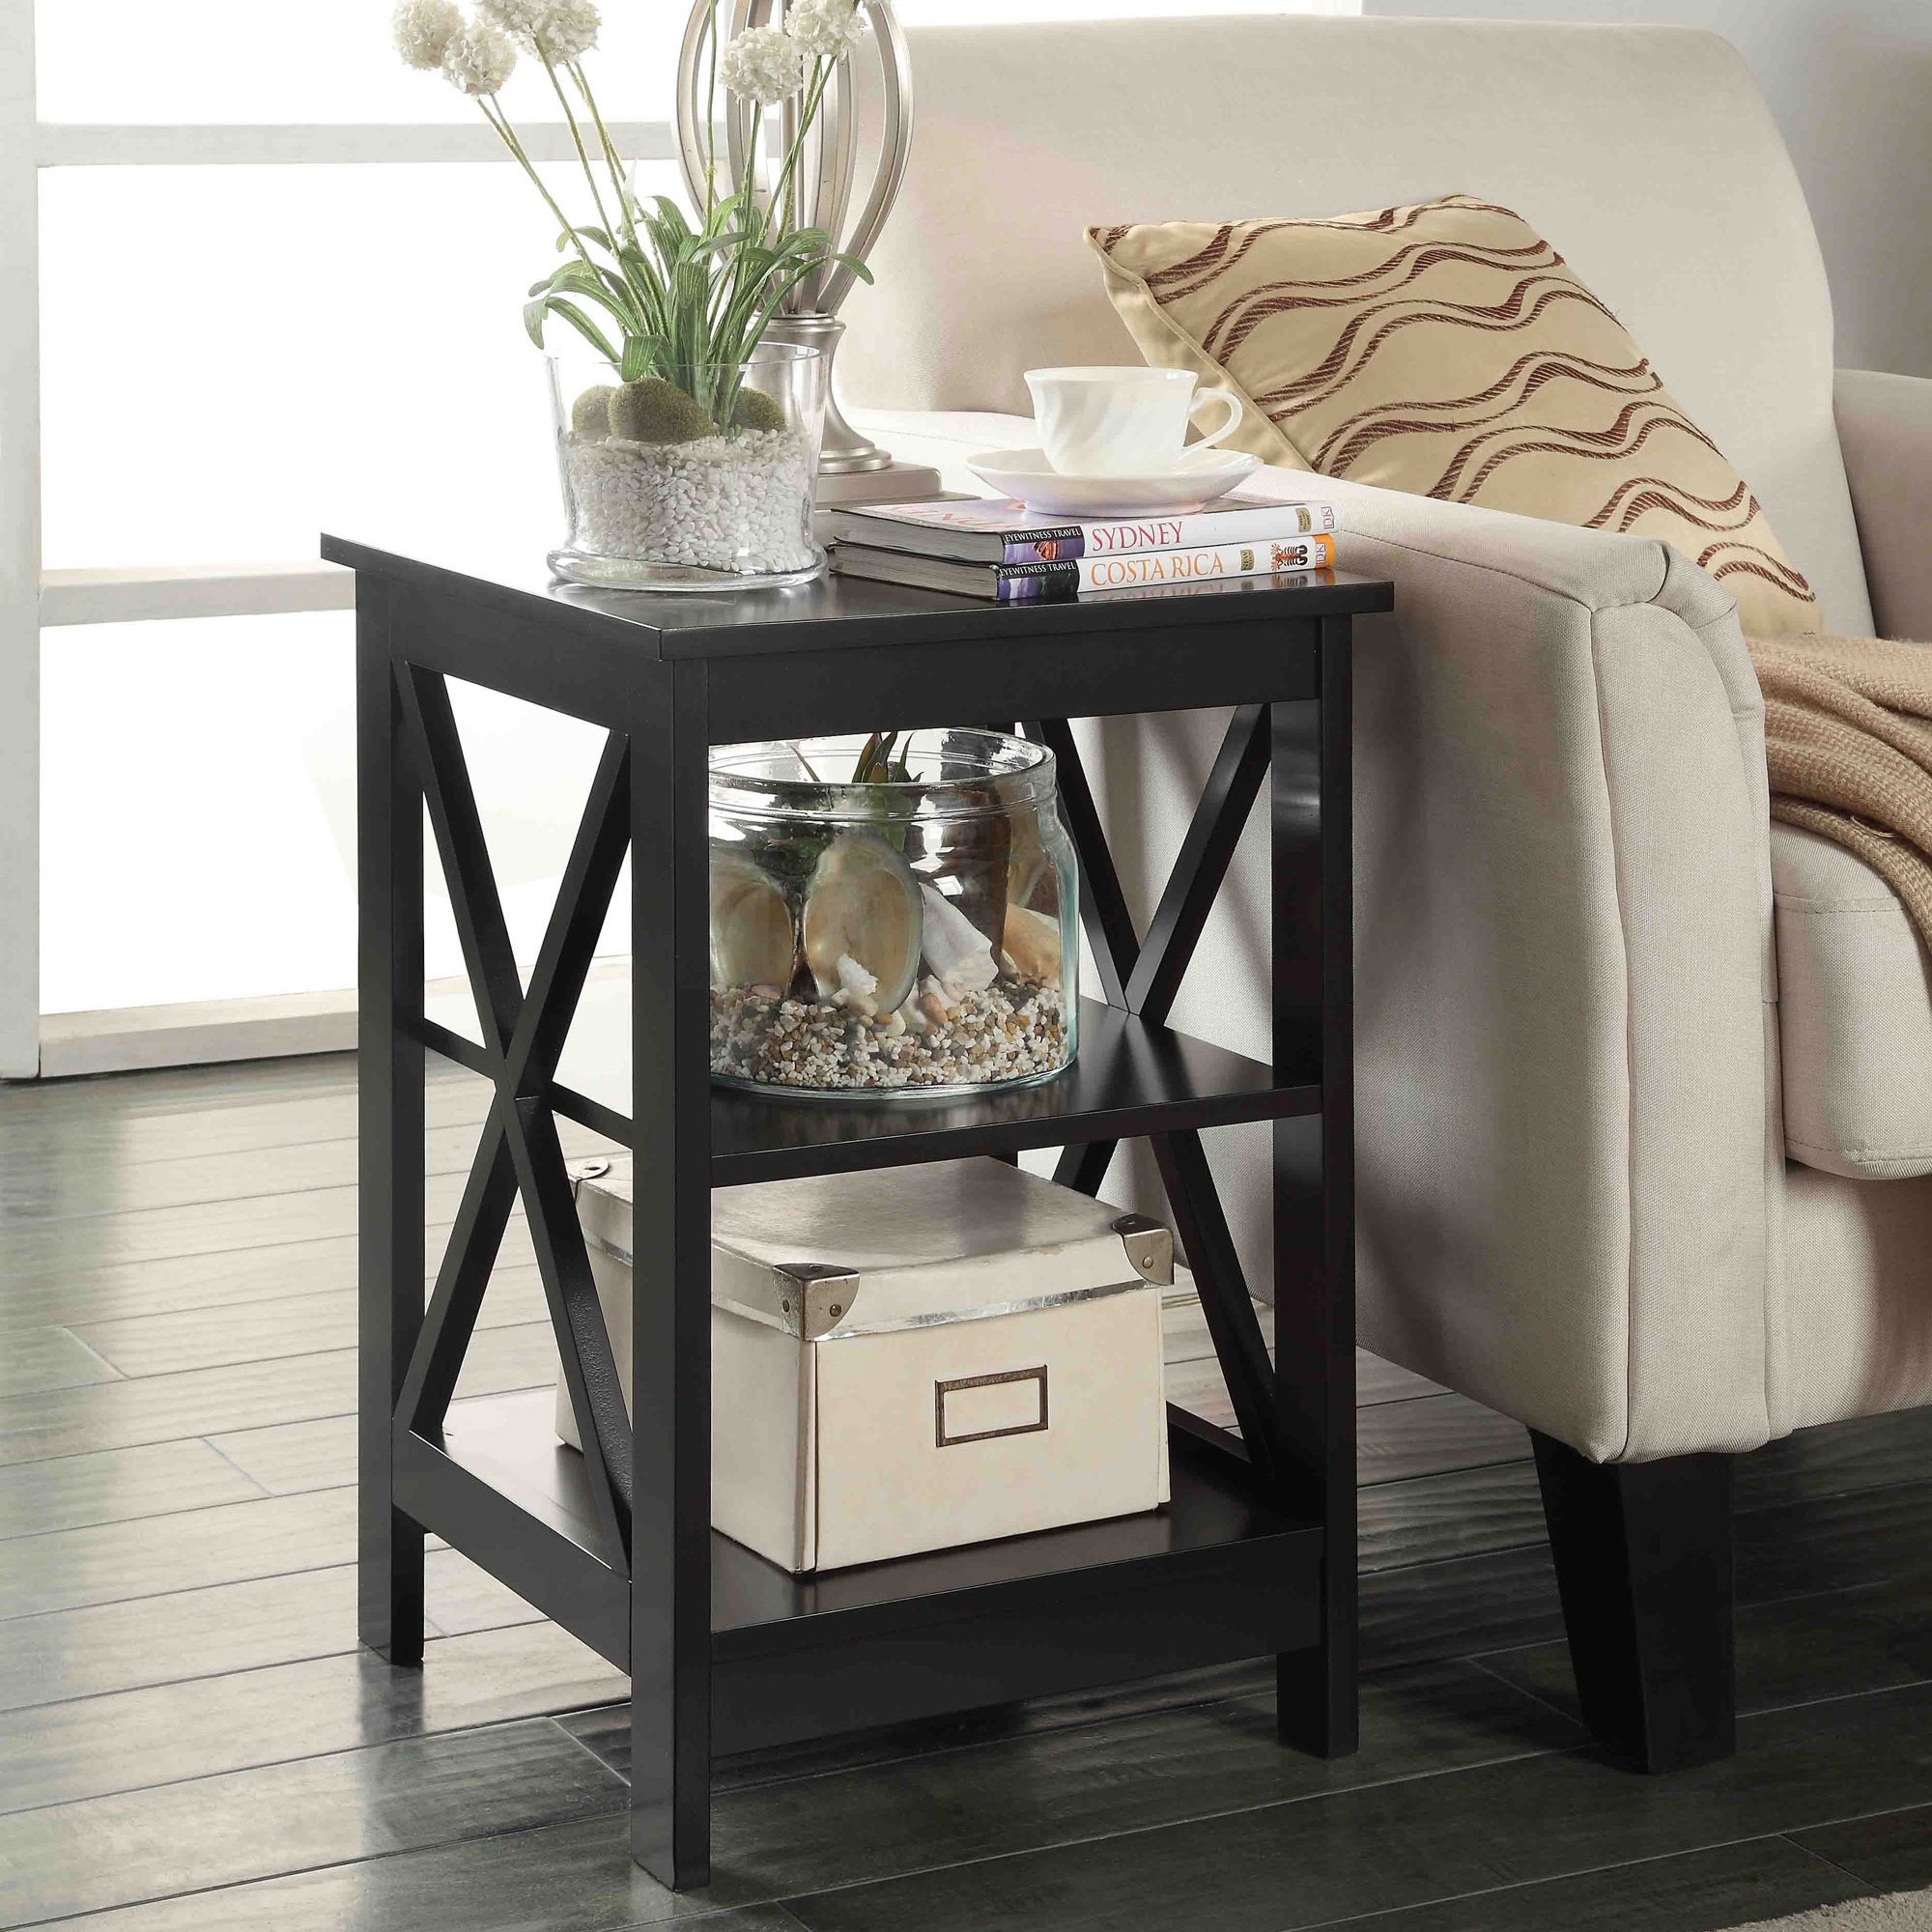 copper grove cranesbill base end table free shipping today the gray barn pitchfork accent modern silver small round farmhouse wall furniture tessa home goods bedside tables urban